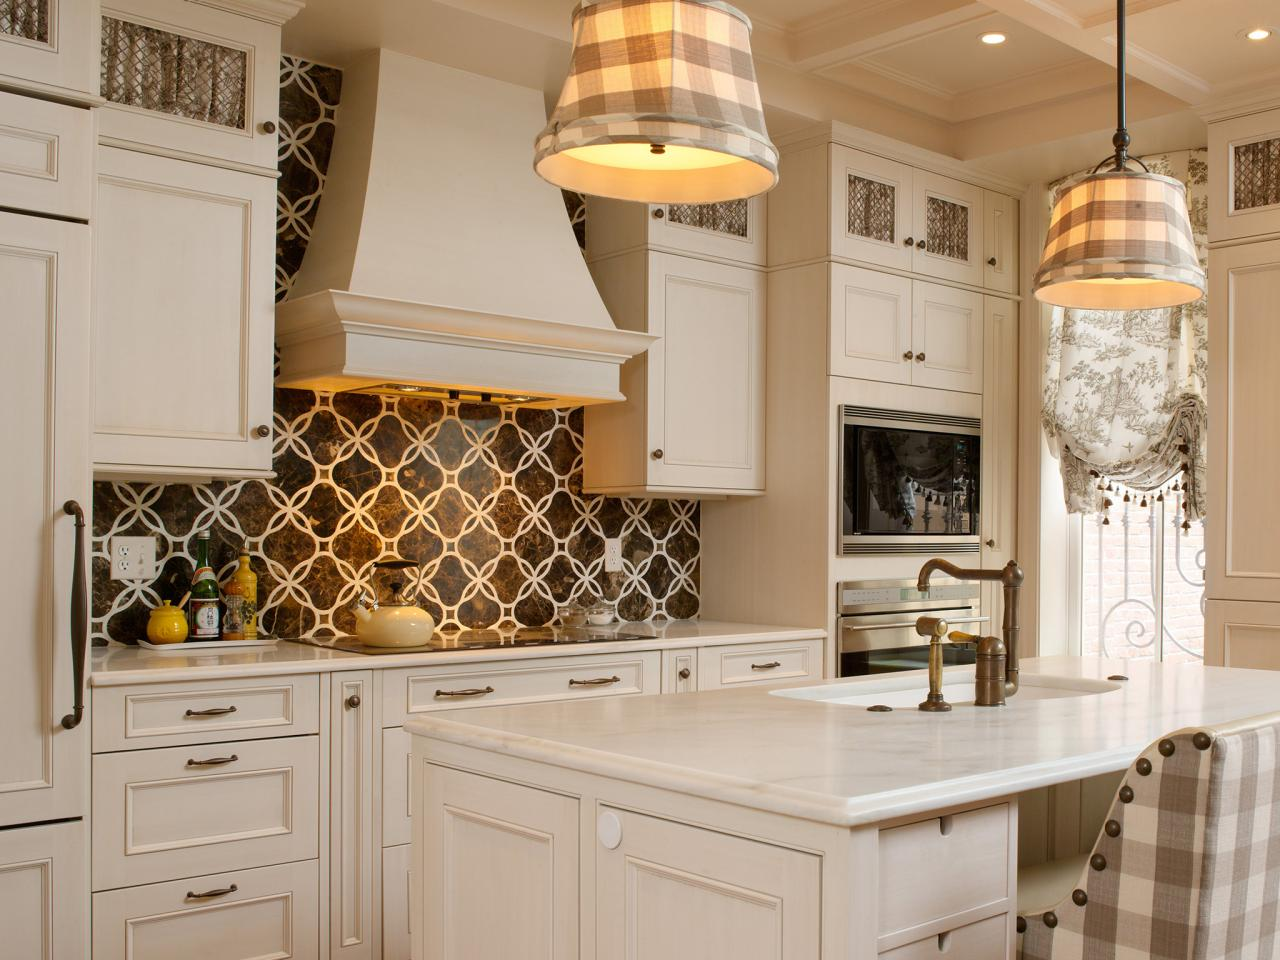 kitchen backsplash design ideas - Backsplash Design Ideas